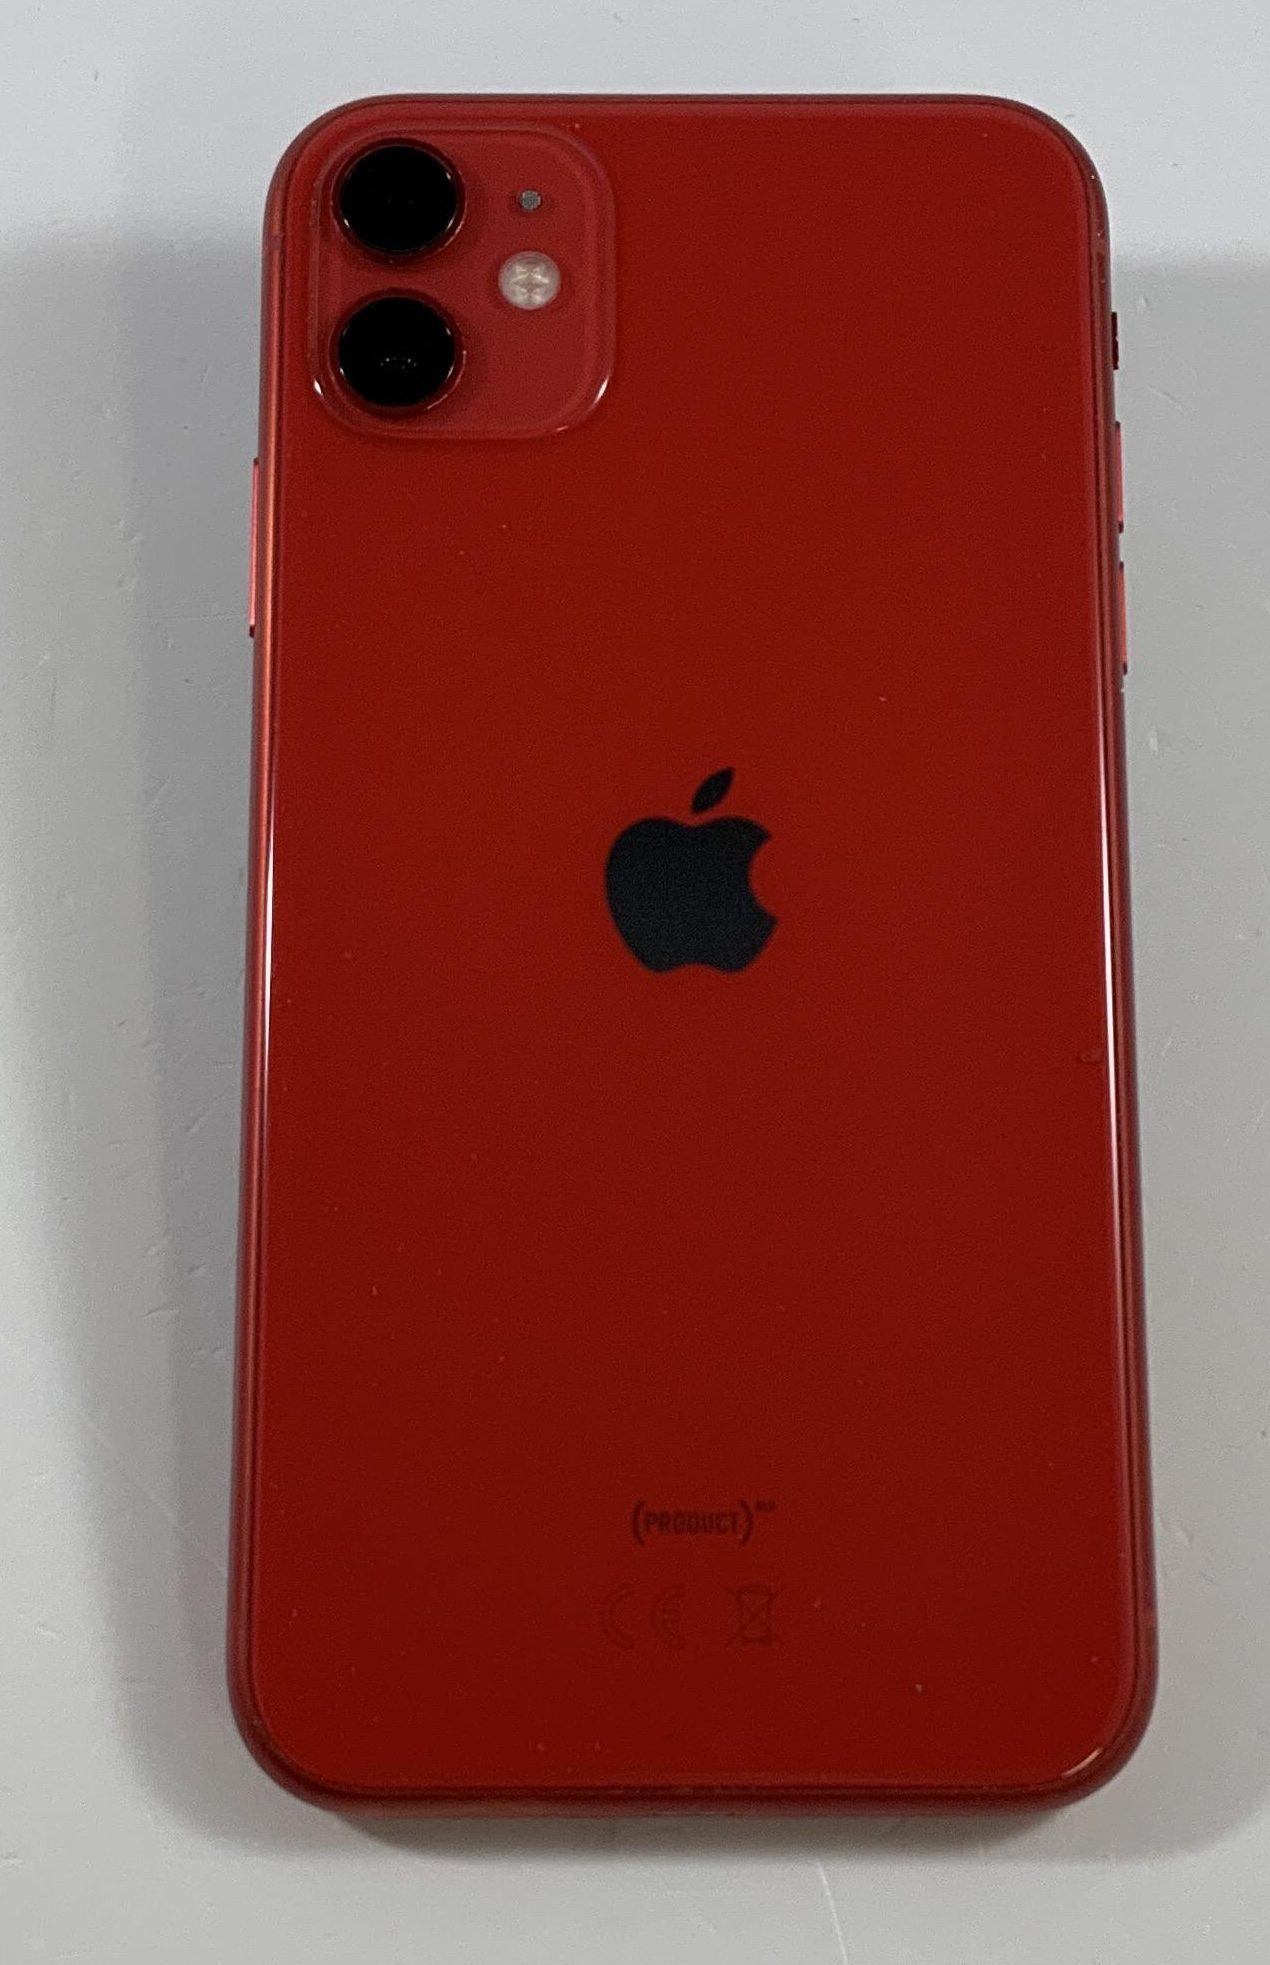 iPhone 11 64GB, 64GB, Red, imagen 2